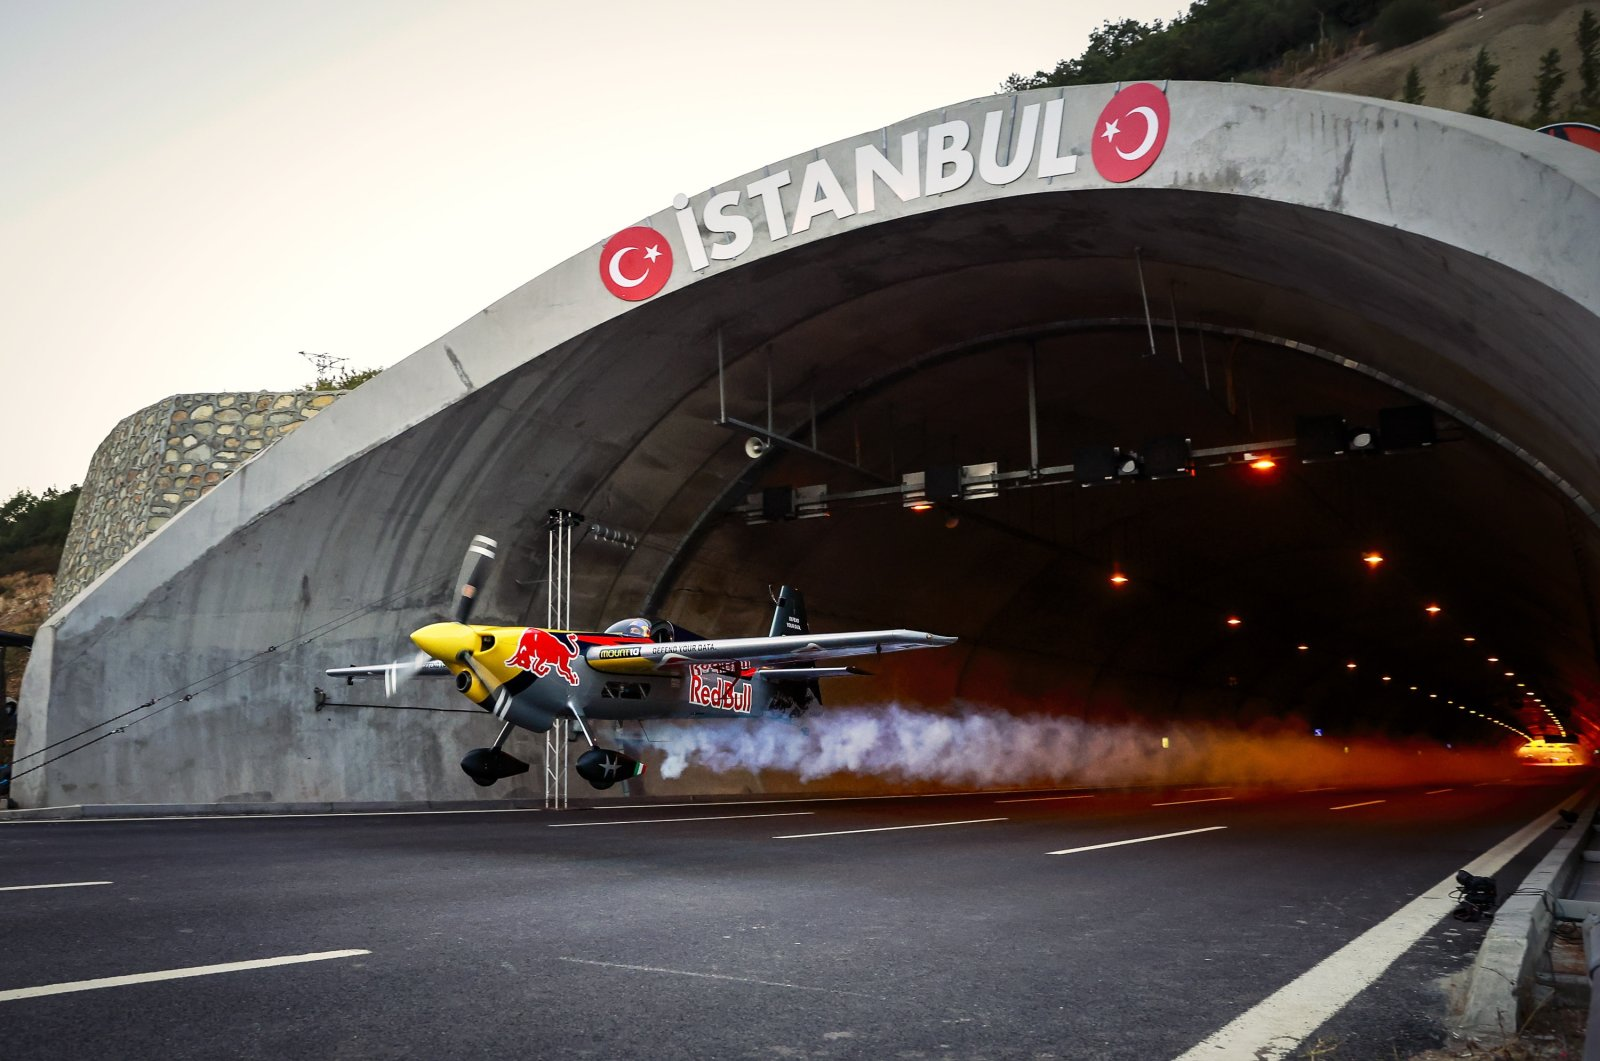 A handout photo made available by the Red Bull Press Office shows Italian pilot Dario Costa in action as he flying through the Çatalça Tunnel in Istanbul, Turkey, Sept. 4, 2021. (EPA Photo)